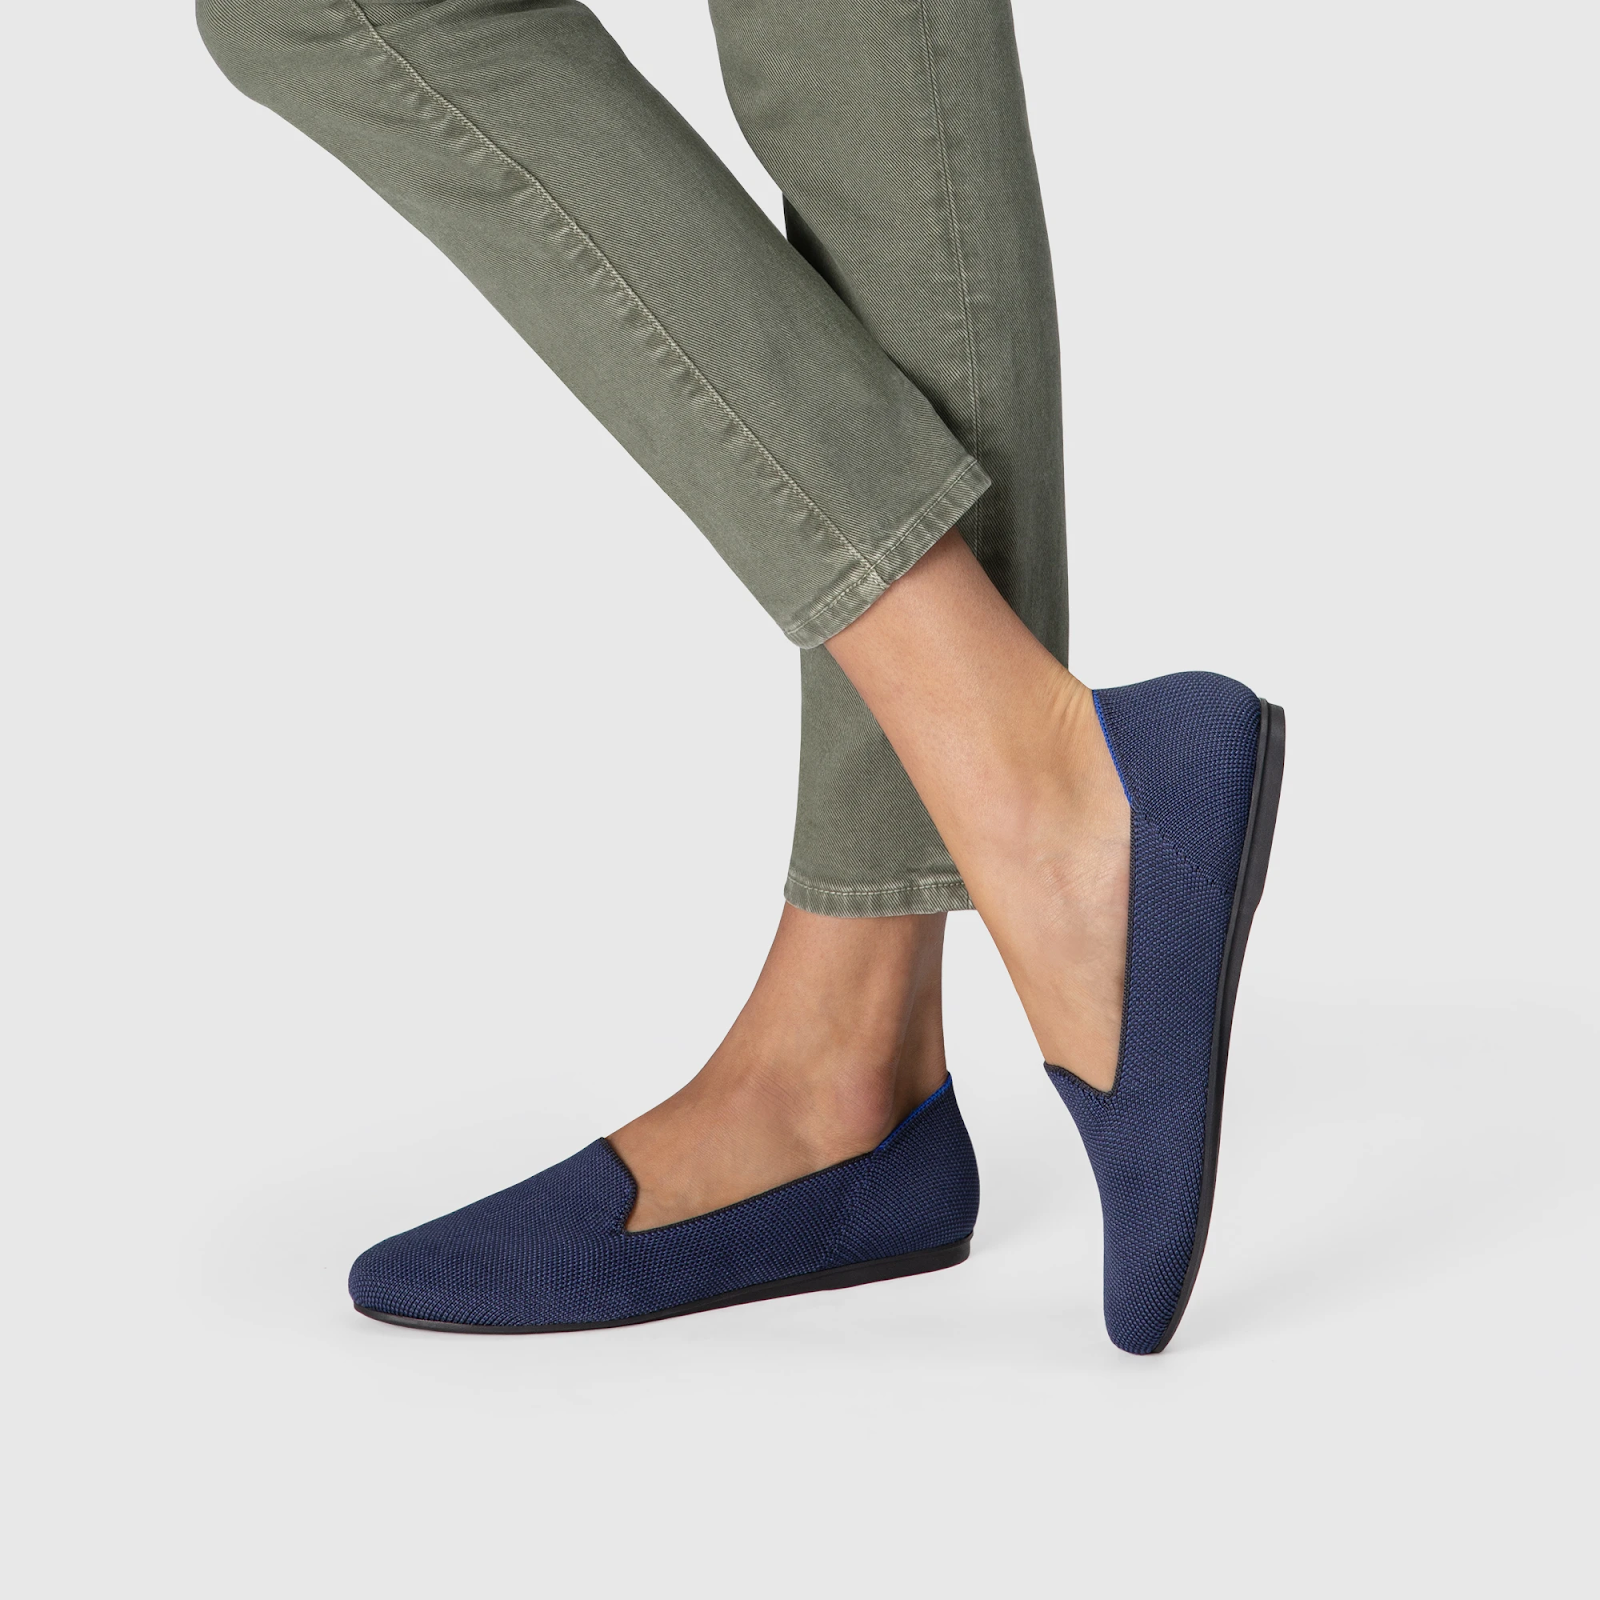 Rothys vs Everlane Shoes Review 3